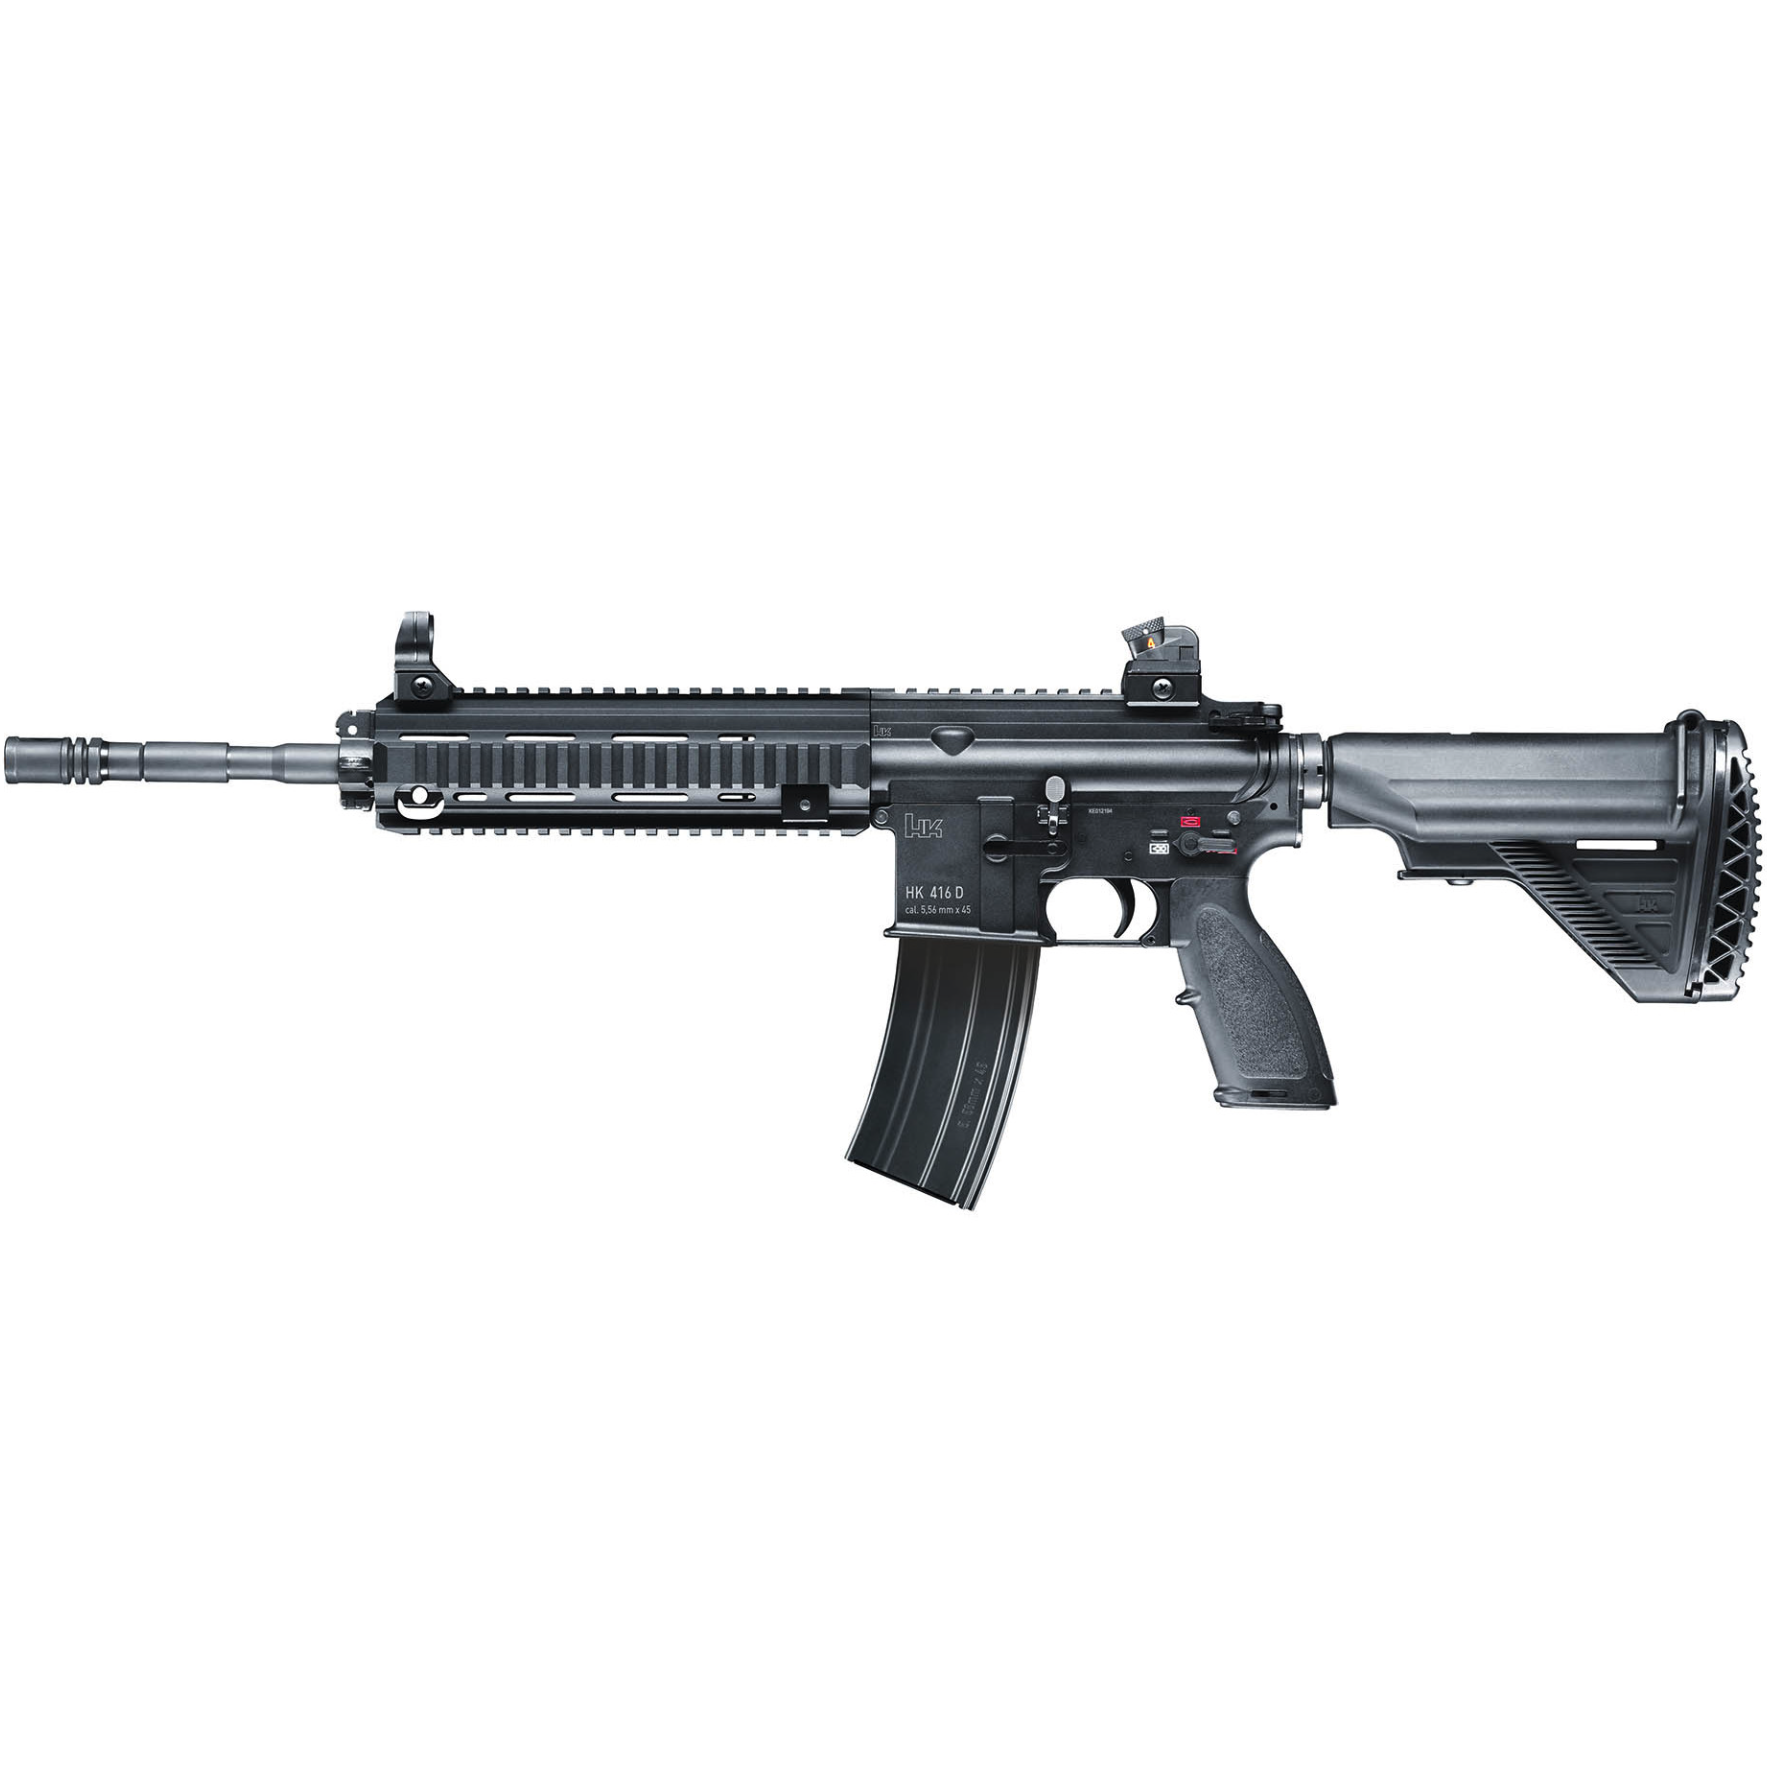 Heckler & Koch HK 416D Gass Softgun